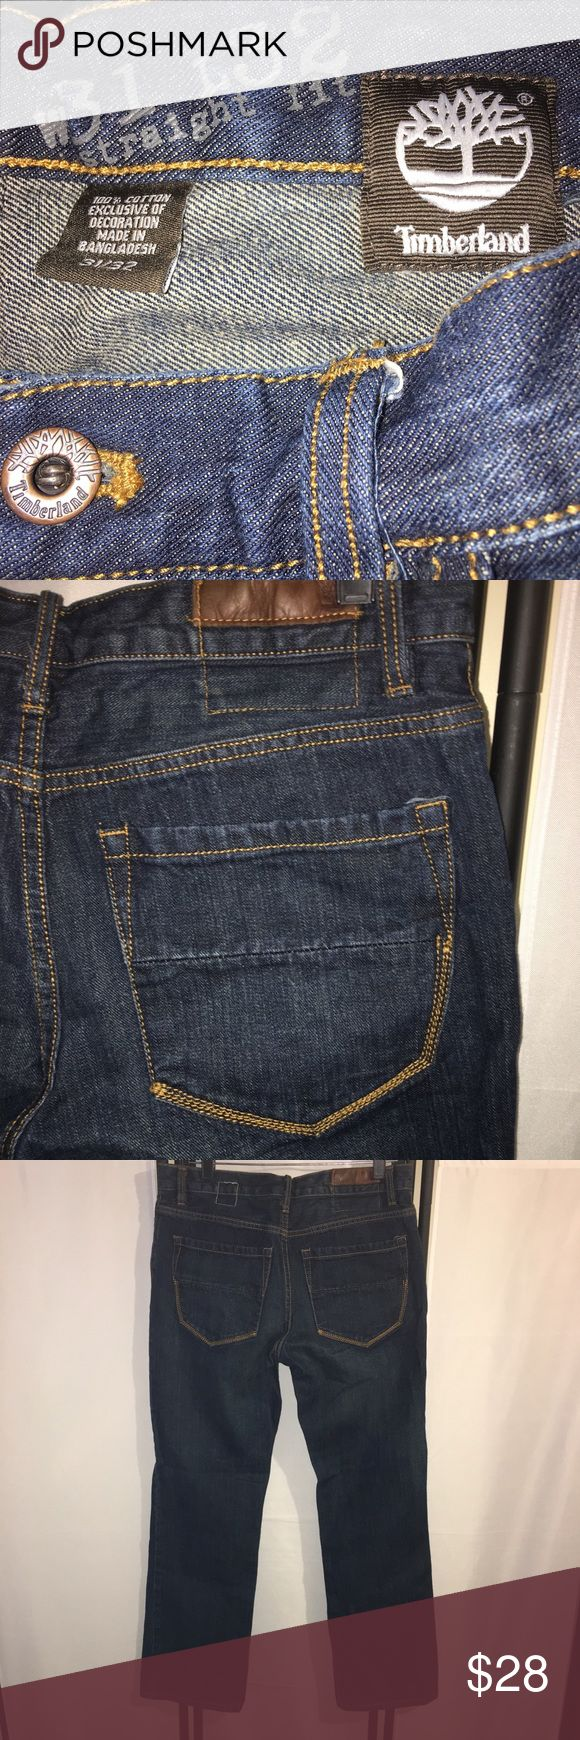 Timberland Jeans Sz 31x32 worn 1 x like new condition. Timberland Jeans Bootcut